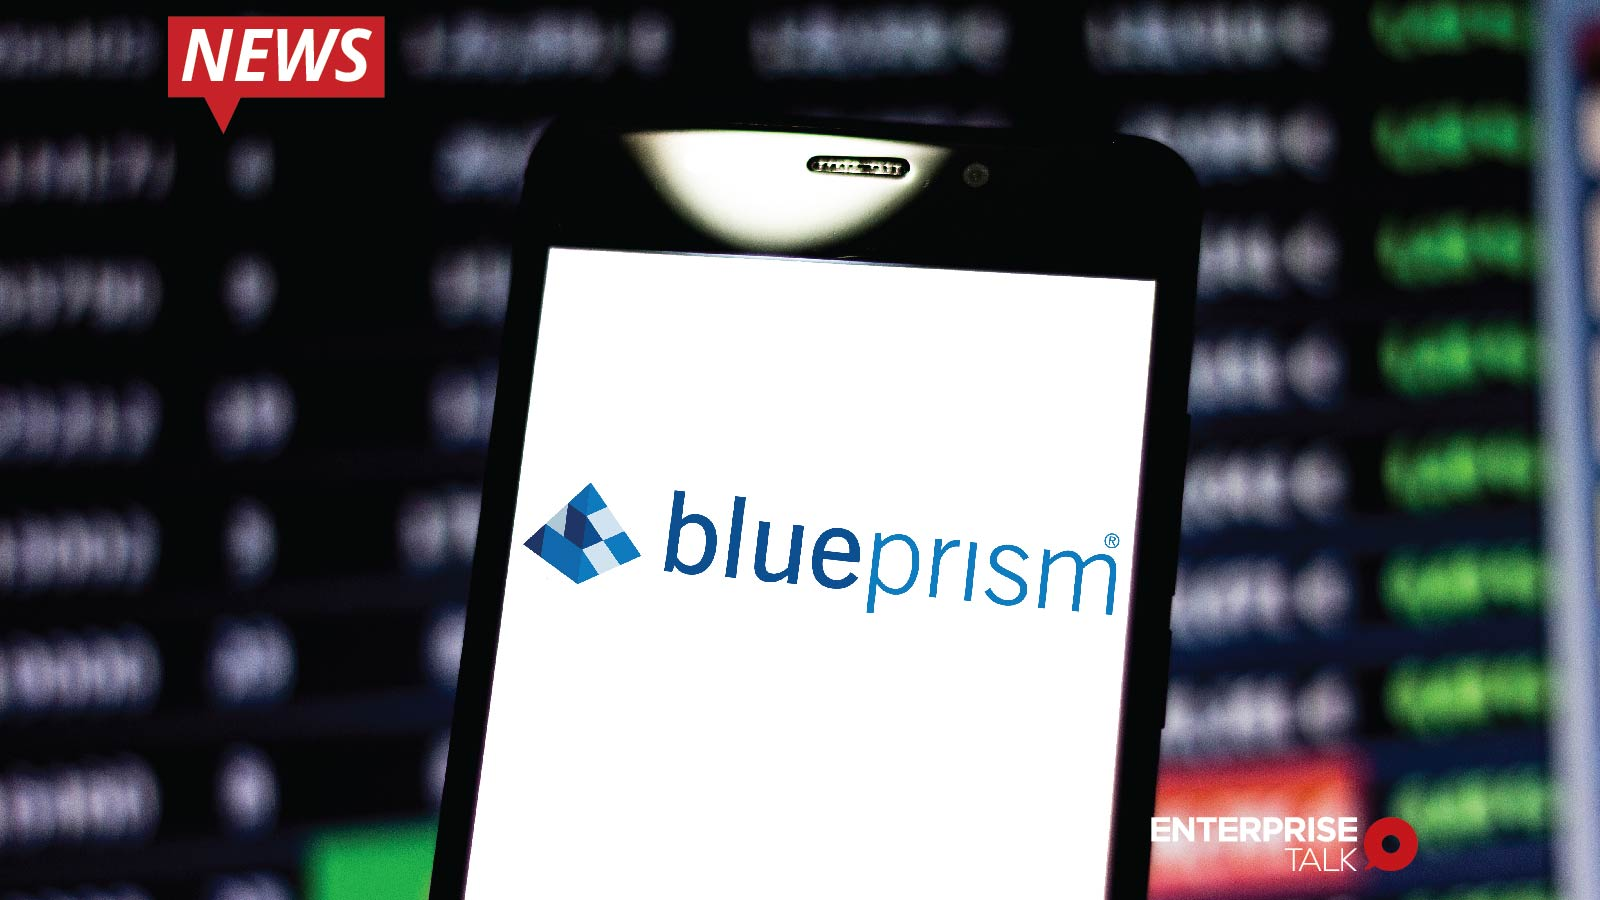 Blue Prism Automation Lifecycle Suite Simplifies Intelligent Automation in the Enterprise